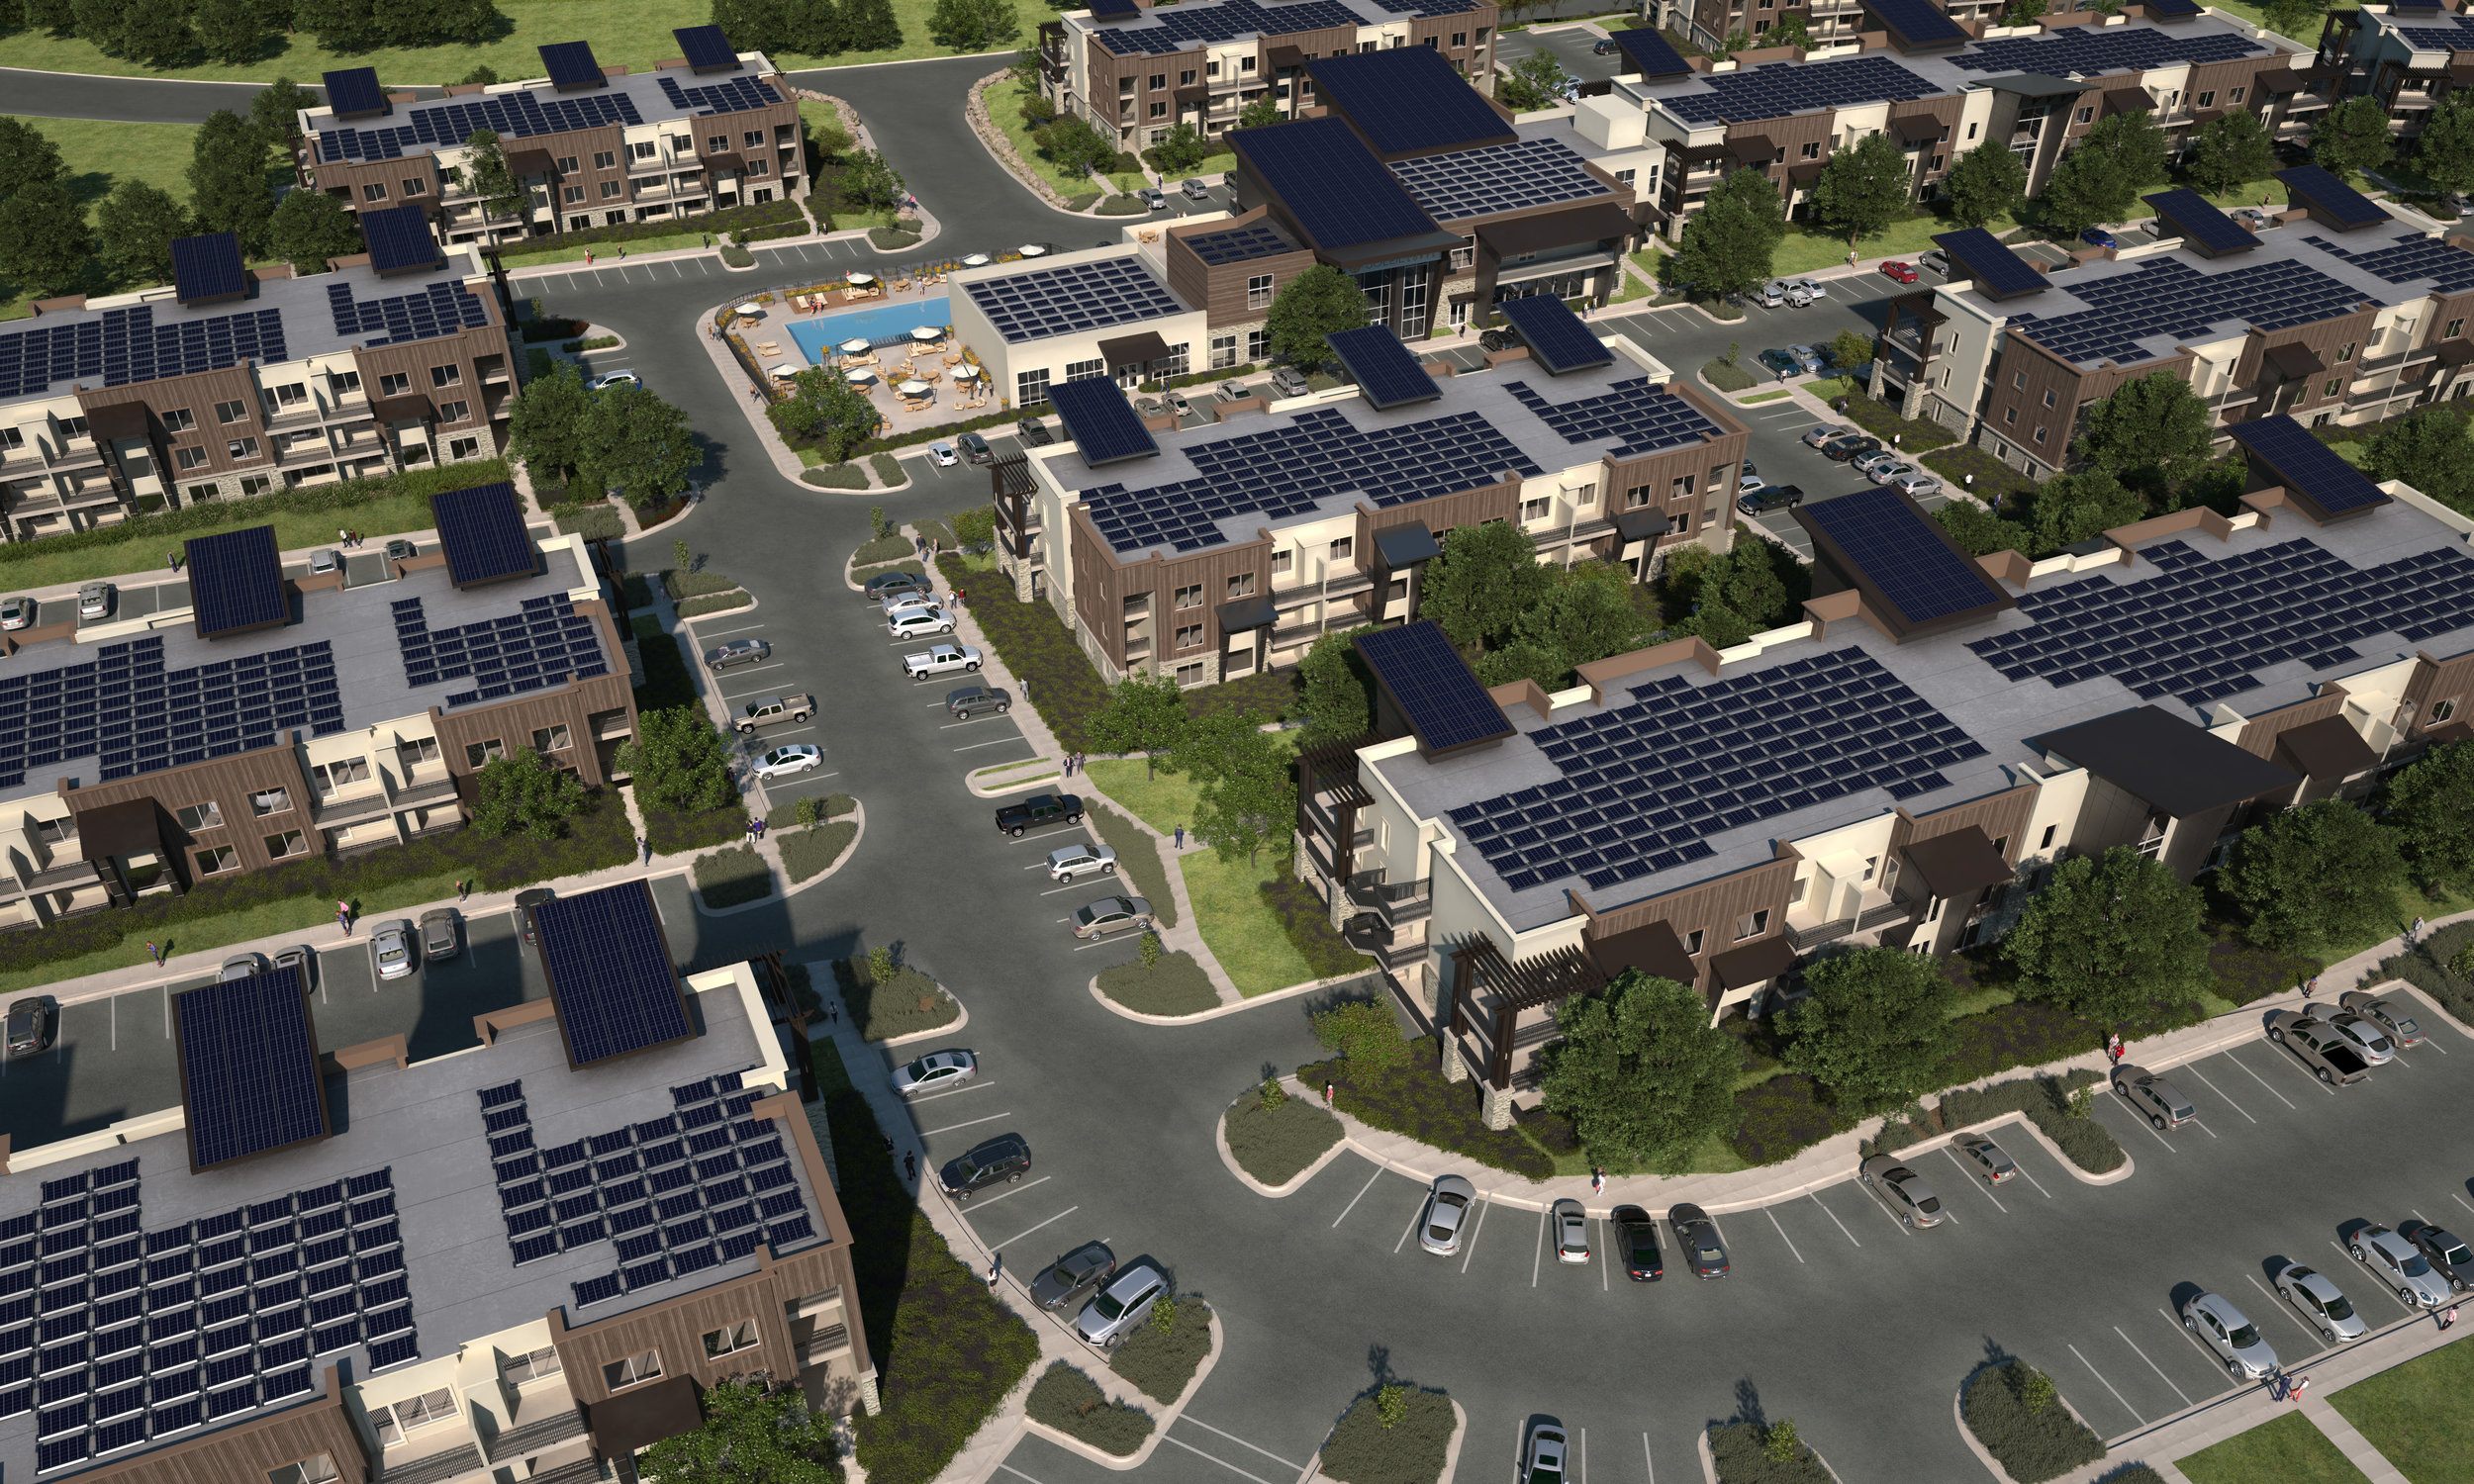 Soleil Lofts aerial view 5MW solar 13MW batteries